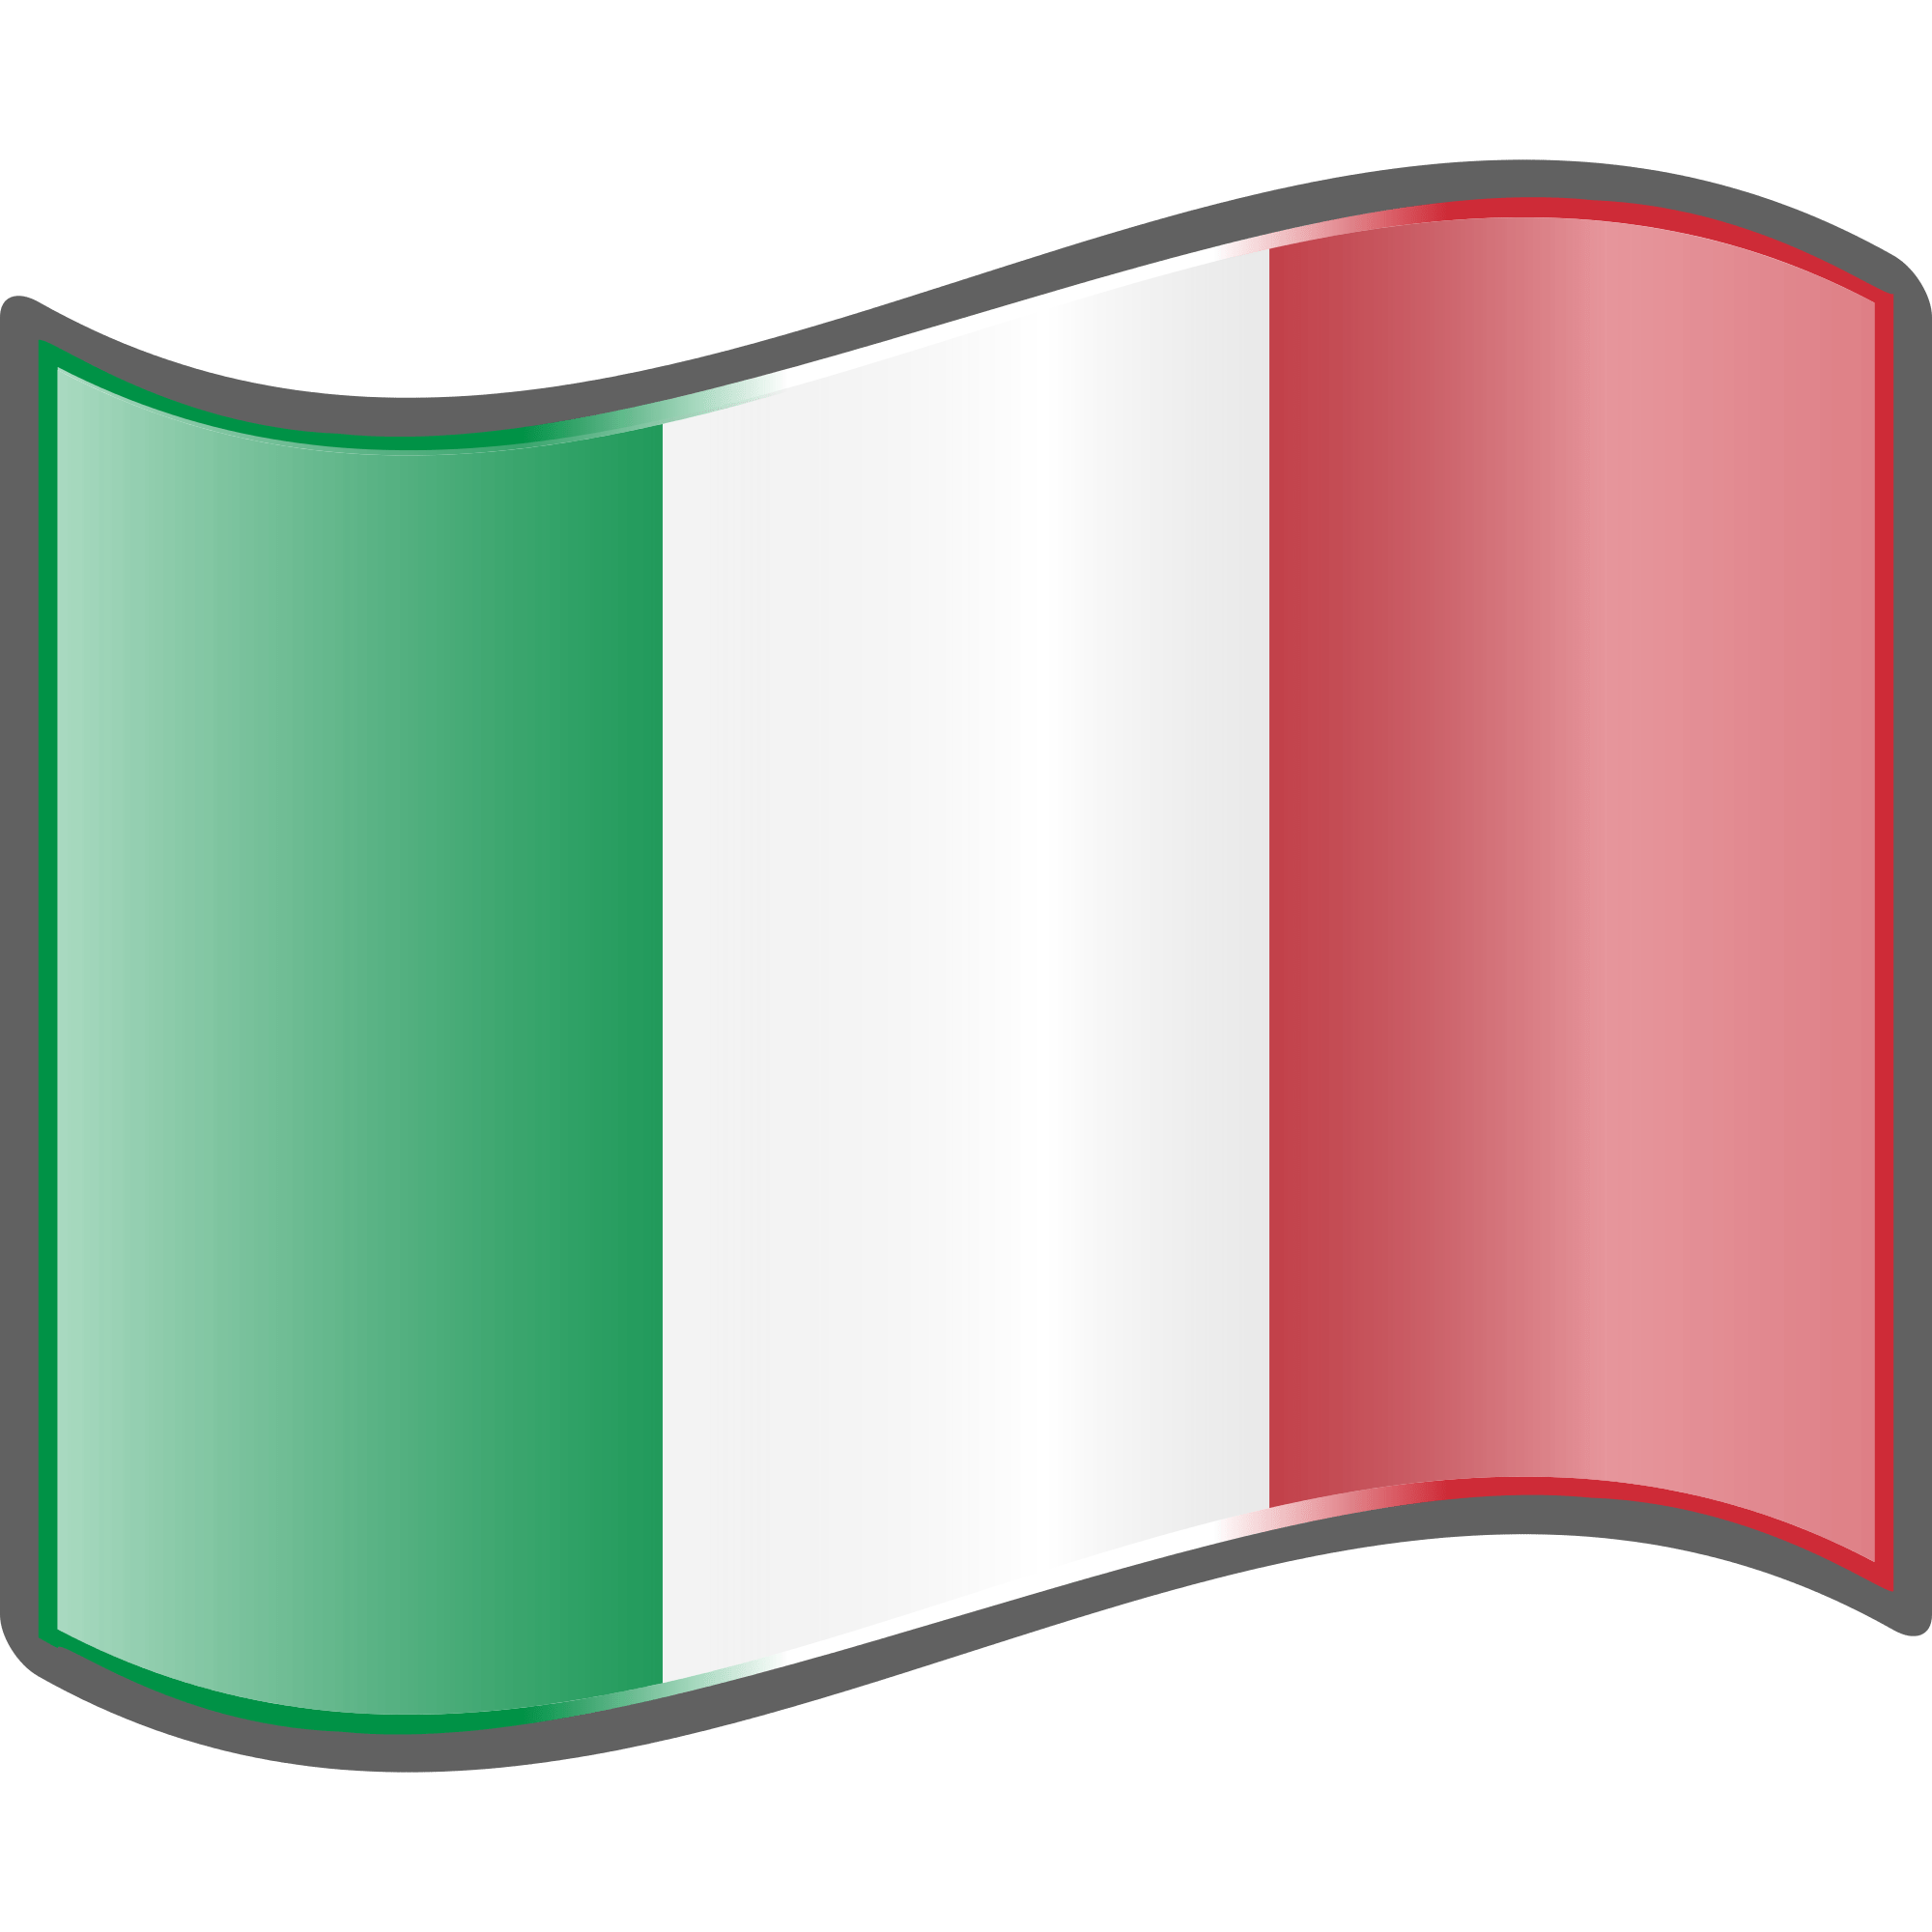 italian flag wave transparent png stickpng rh stickpng com moving italian flag clip art free waving italian flag clip art